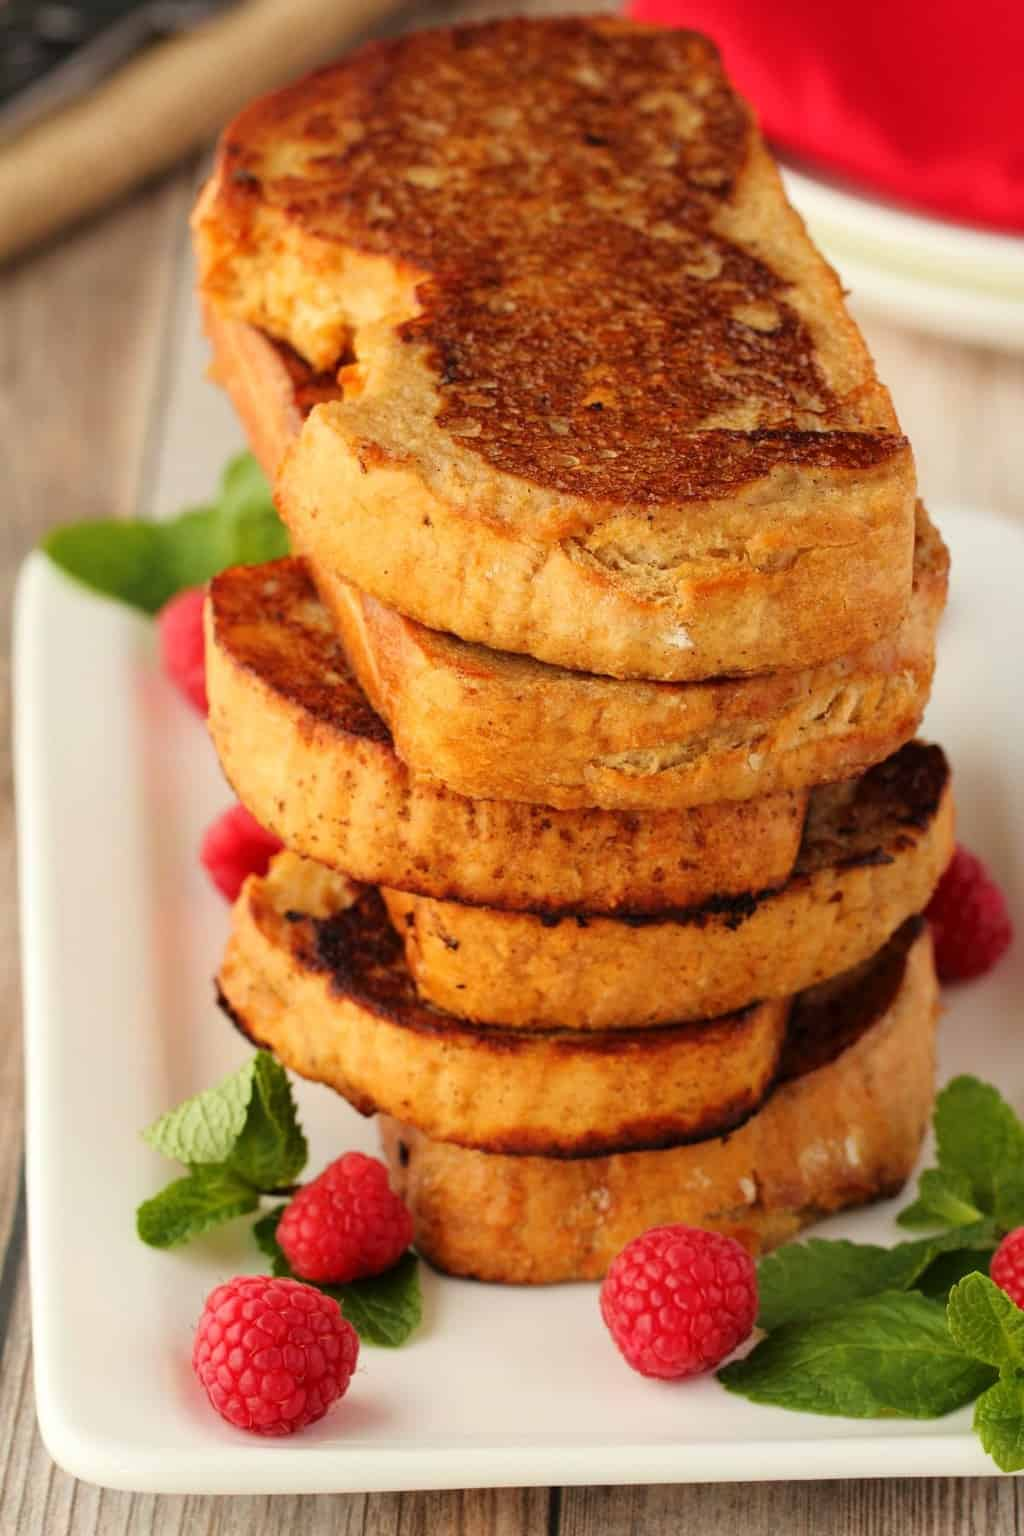 A stack of vegan french toast surrounded by mint leaves and raspberries on a white plate.